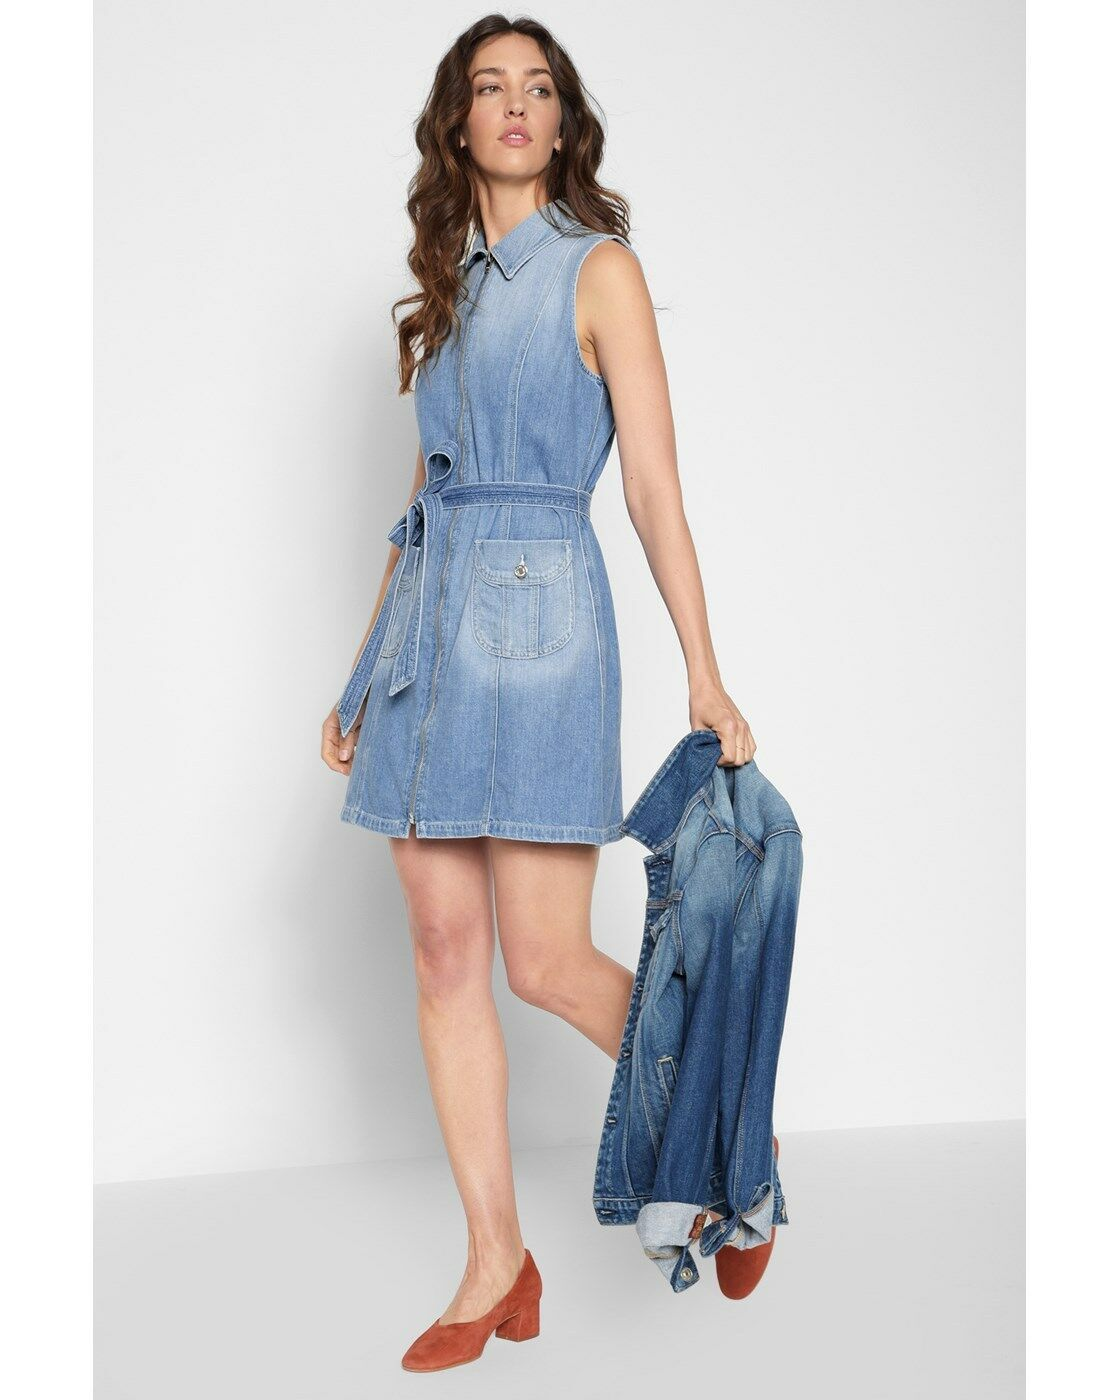 259 7 For All Mankind Belted Zip Front Luxe Lounge Coastal bluee Denim Dress L